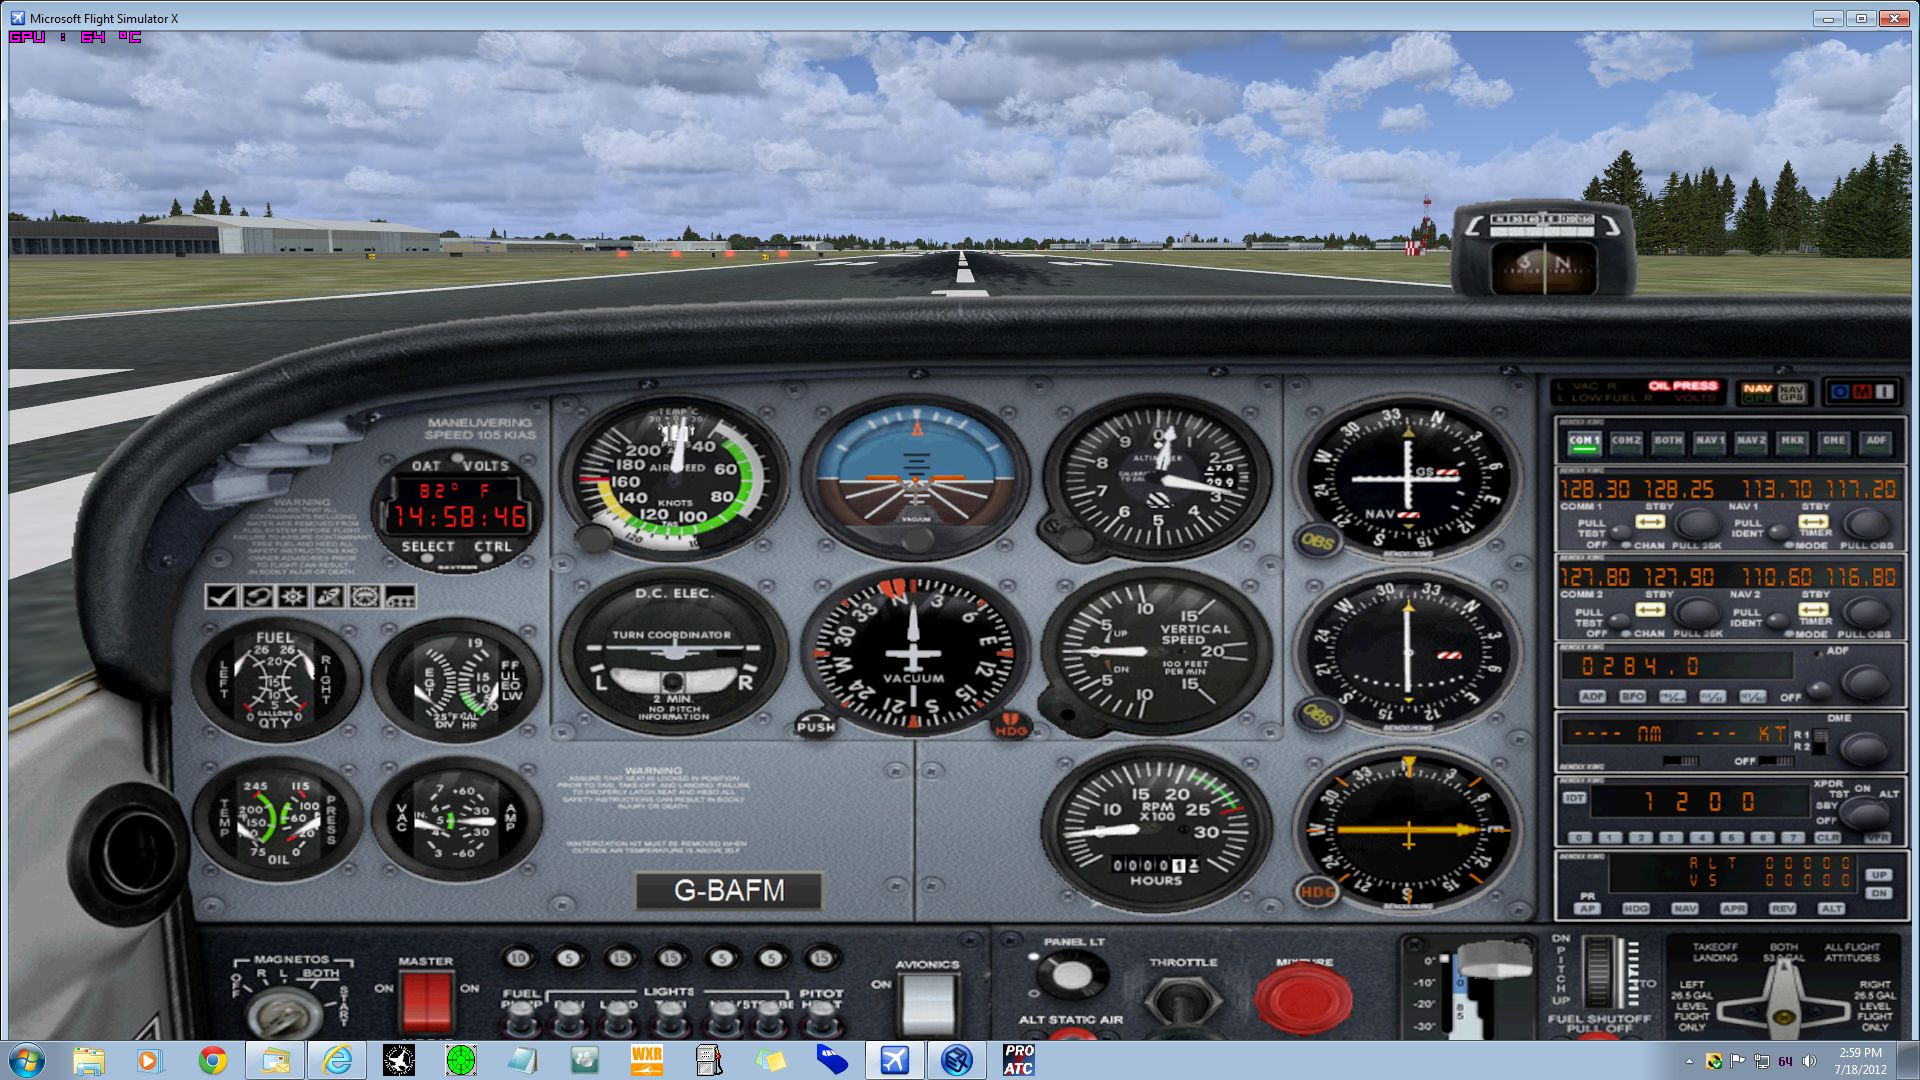 Captain Sim Forum Misc 2006 Commander With A Dome Light Circuit Issuefuse Panelswitches 777 Will Apear At Same Spot Where Cs172 Located Engines Are Not Running Rat Is Deployed Switches Off In